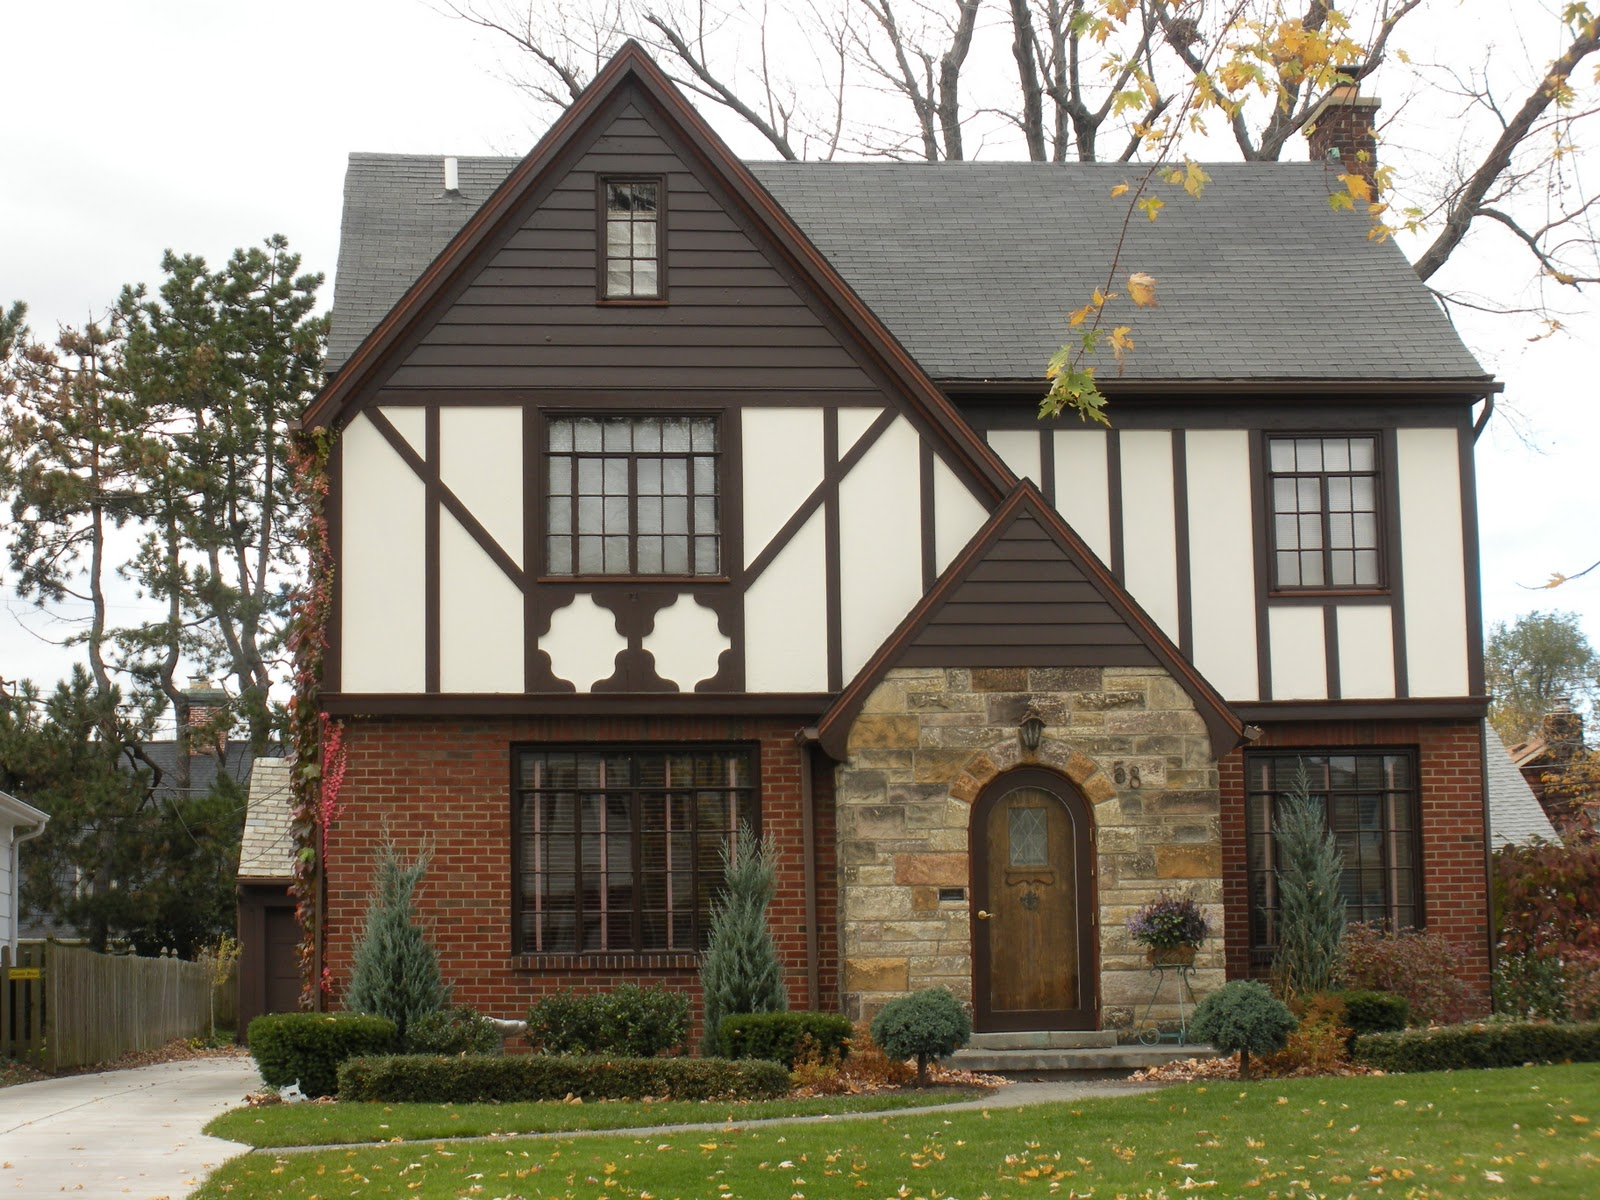 Top 15 house designs and architectural styles to ignite for Tudor cottage plans